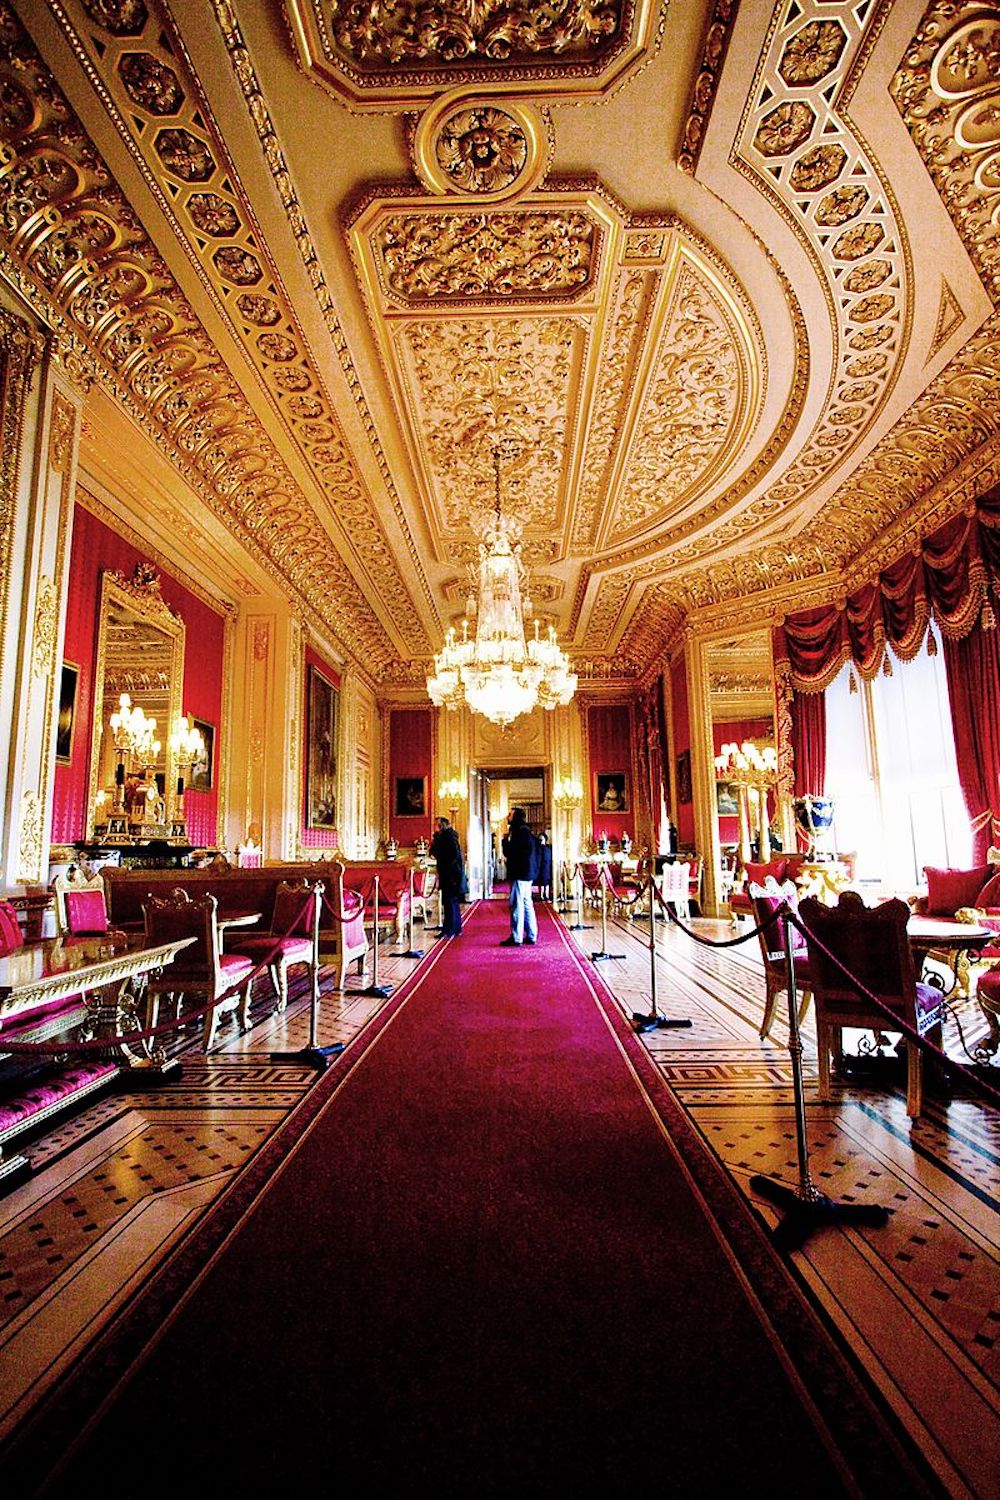 Windsor Castle: The Crimson Drawing Room in 2007 following the 1992 fire and subsequent remodelling. Photo Credit: © Wikimedia Commons.